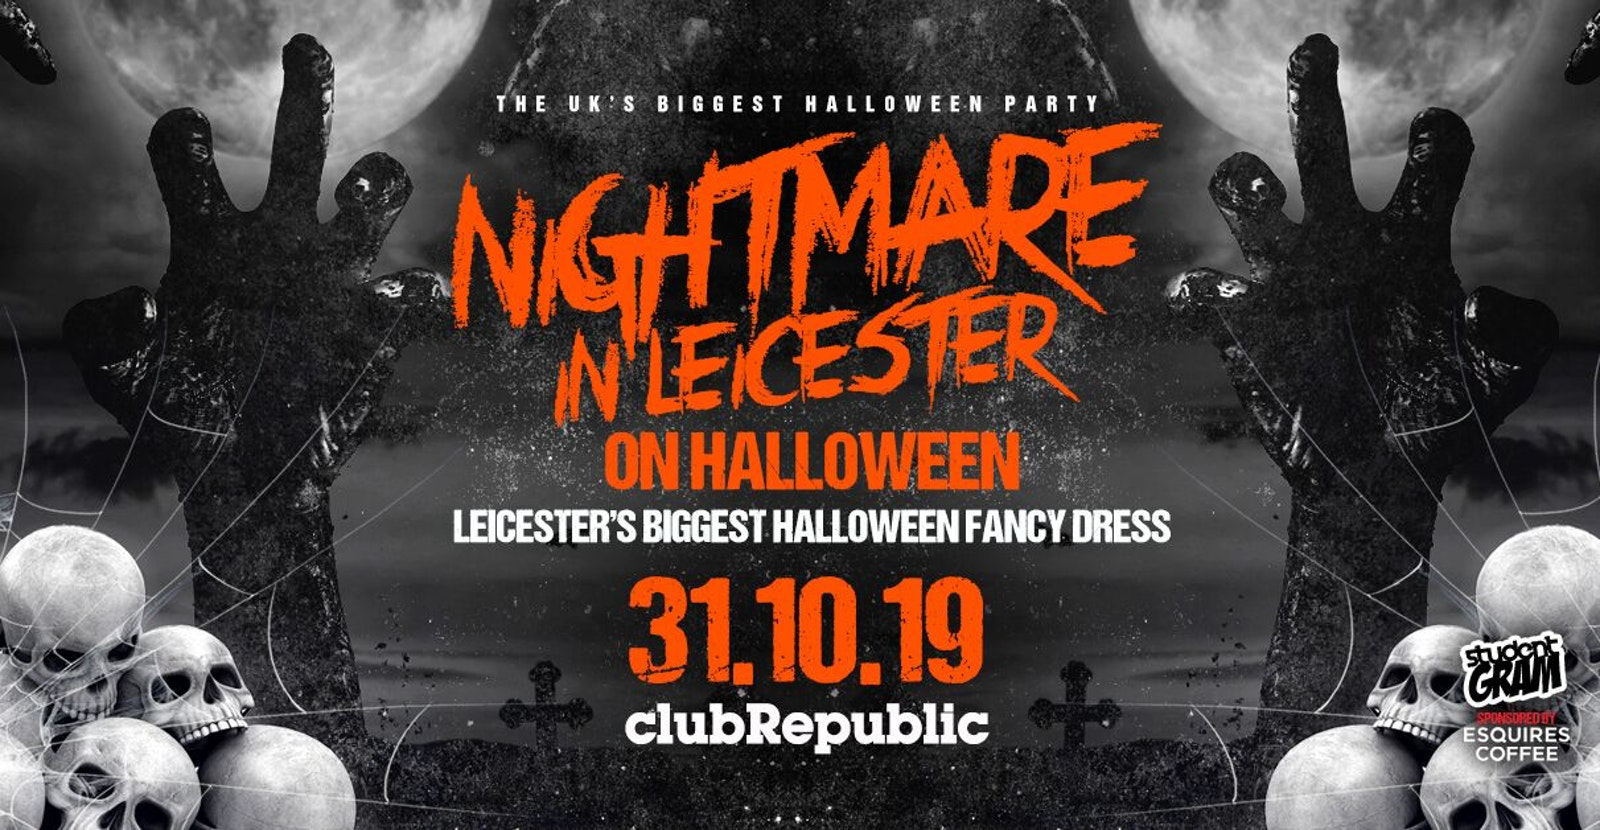 ★ Nightmare in Leicester on Halloween ★ Leicester's Biggest Halloween Fancy Dress ★ 5000+ Zombies ★ Club Republic